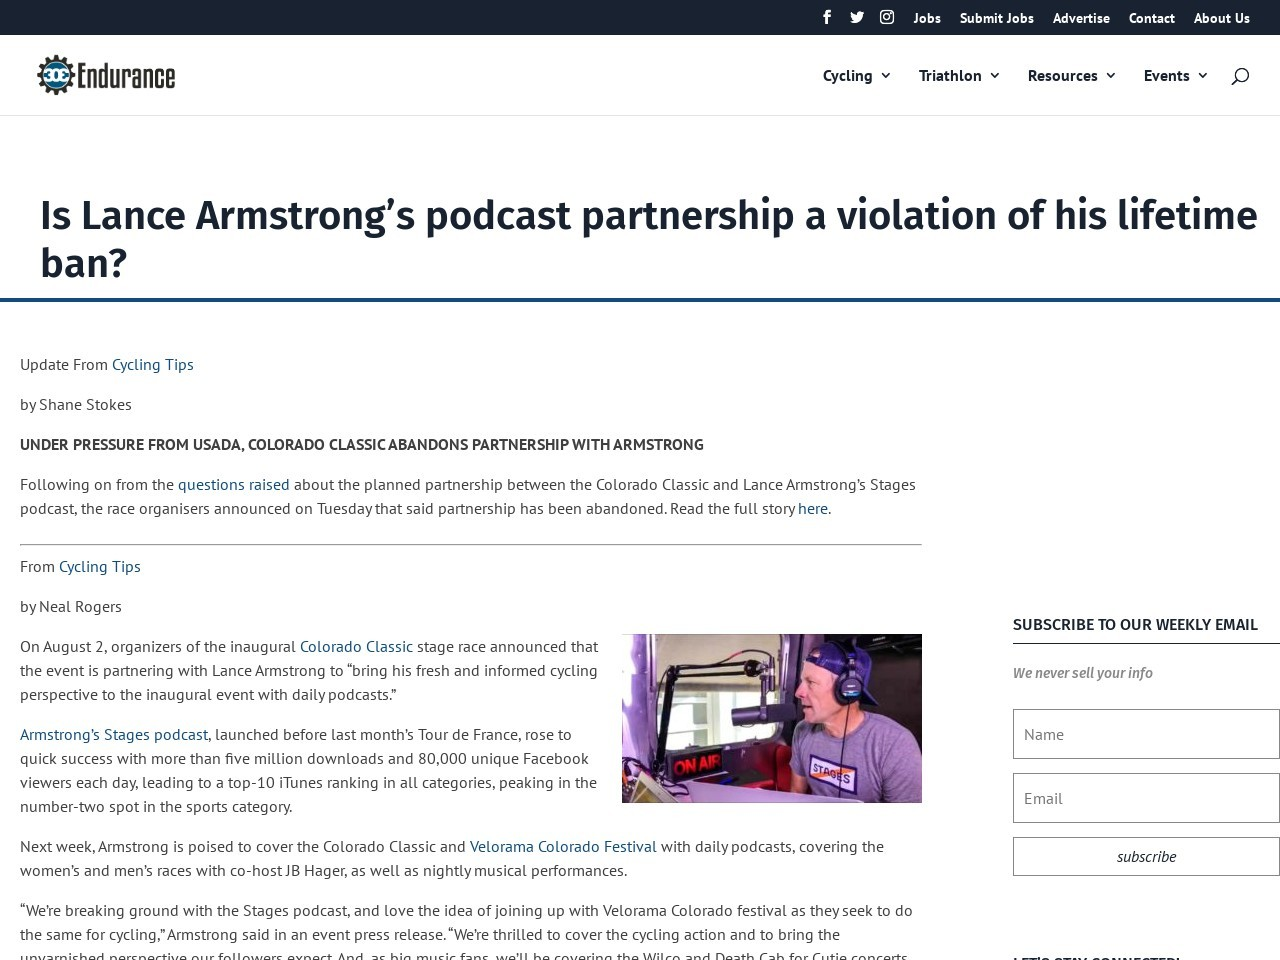 Is Lance Armstrong's podcast partnership a violation of his lifetime ban?